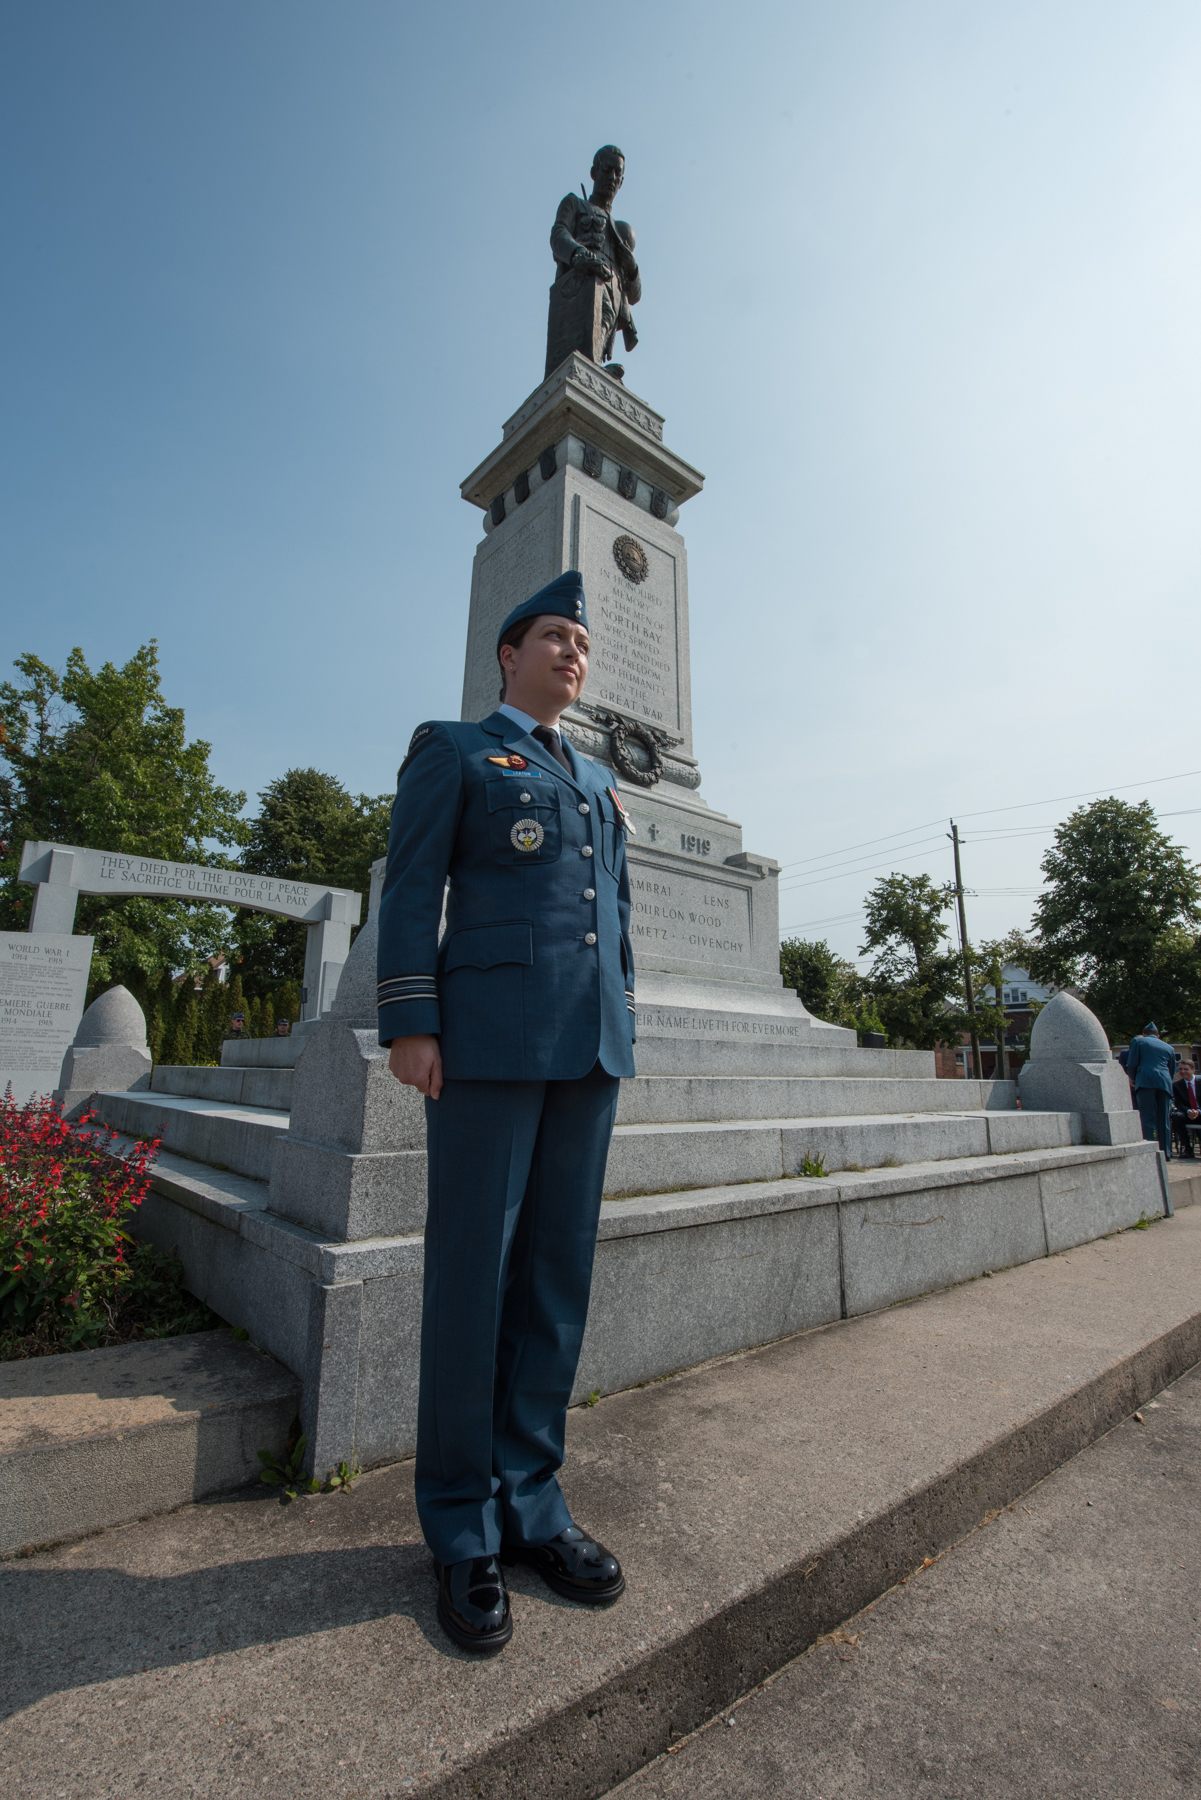 A woman wearing a medium-blue uniform stands at attention at the right front corner of a tall memorial topped with a statue and backed by trees.